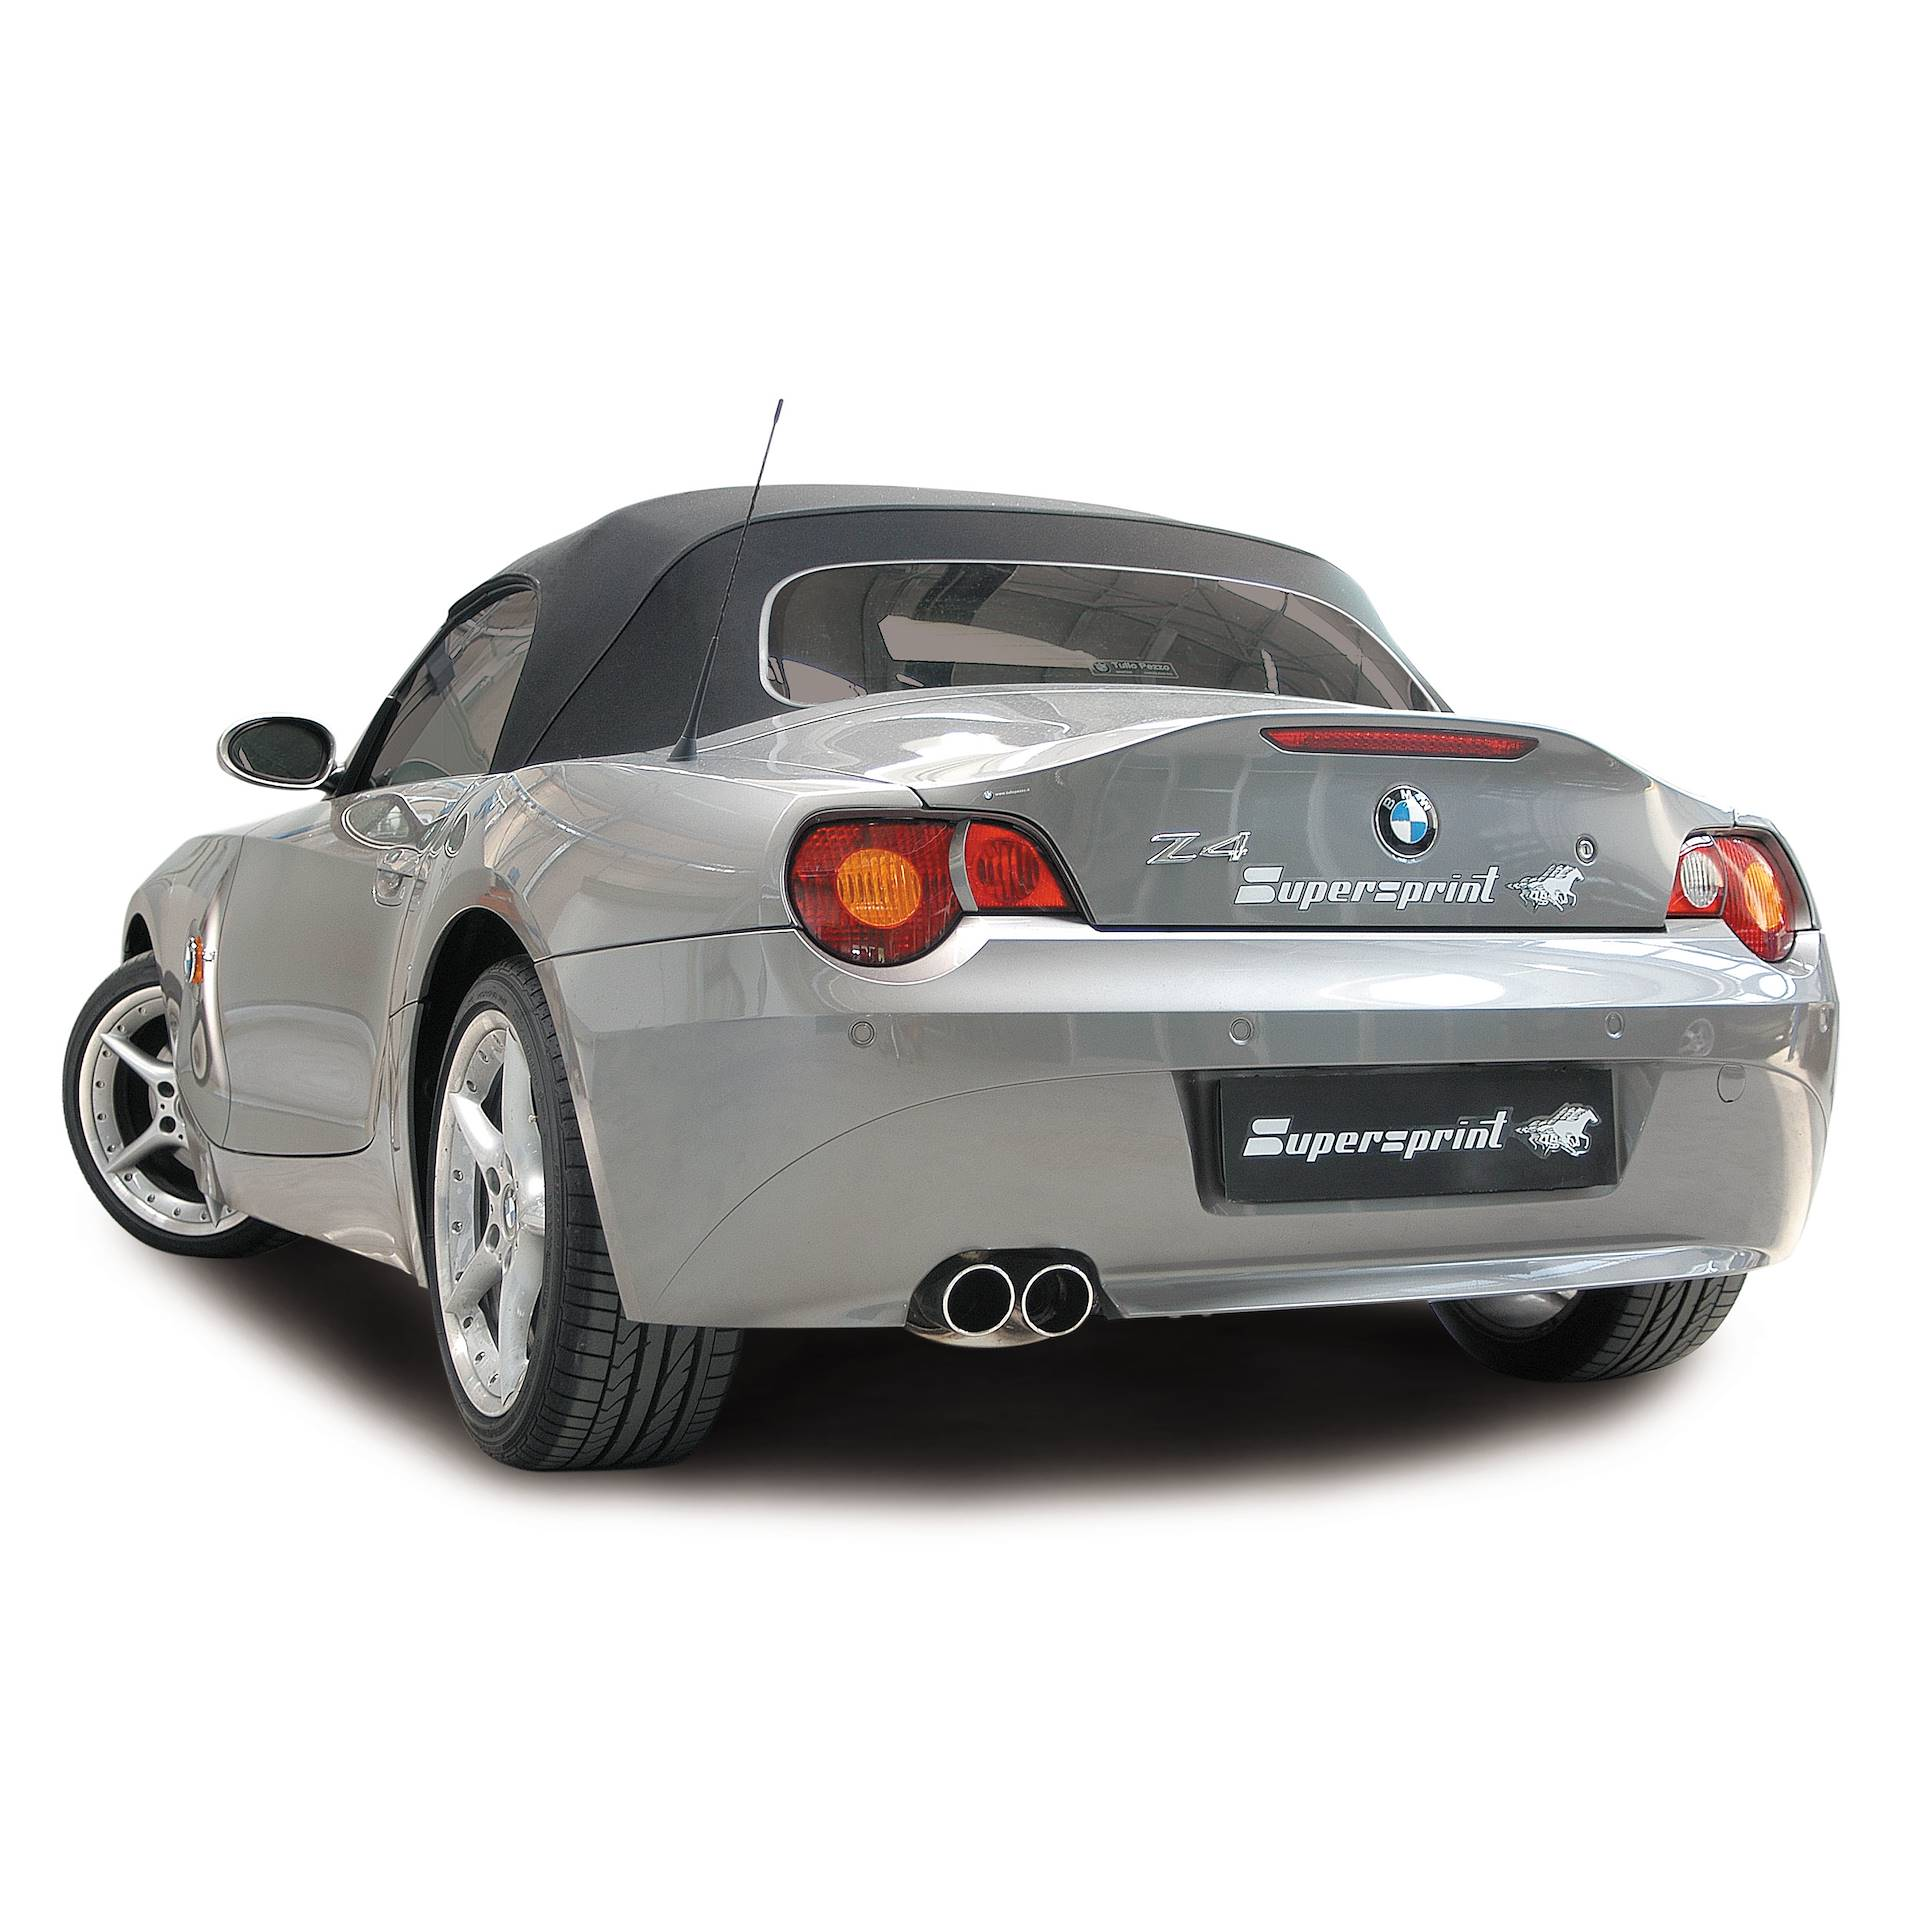 BMW - BMW Z4 Roadster LHD 2.5i (192 Hp) ' 03 -> ' 05